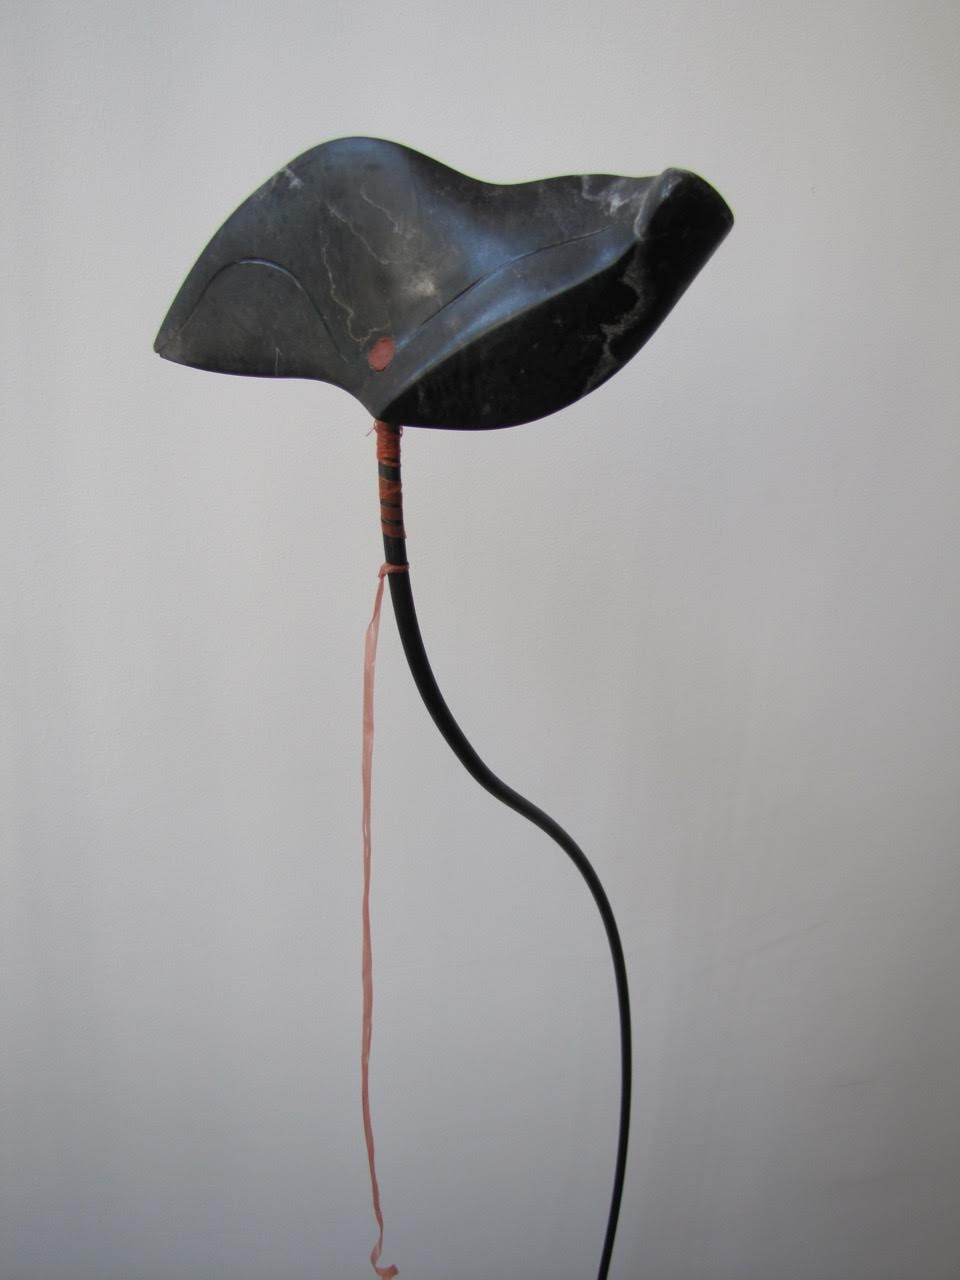 'Flight' 2012 Black Alabaster, pigment, wax 10cm x 15cm x 5cm Stand: steel - 135cm £175*